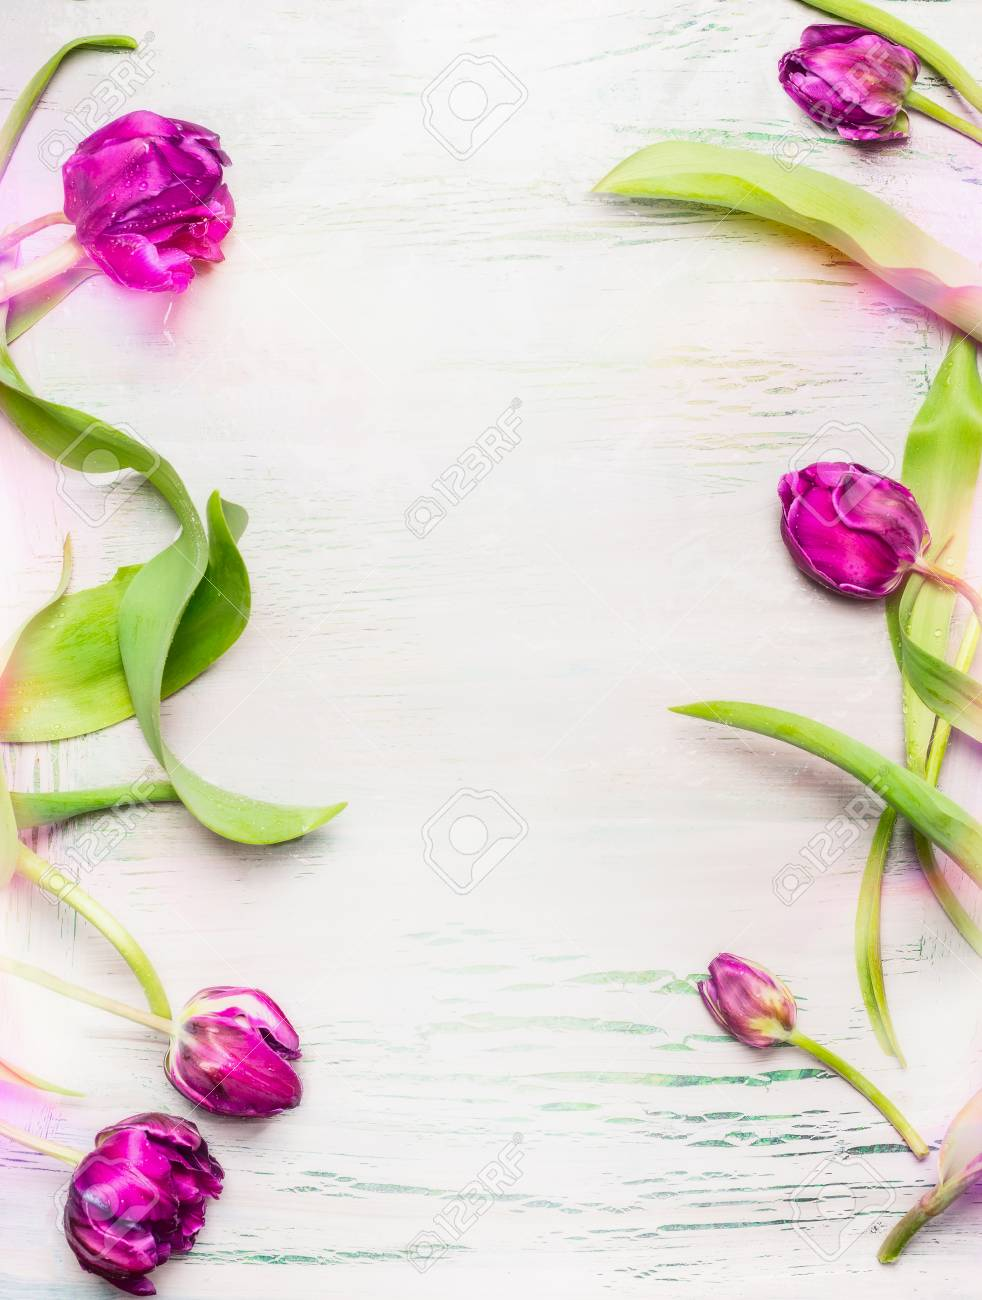 Tulips Frame On Light Shabby Chic Background Top View Vertical